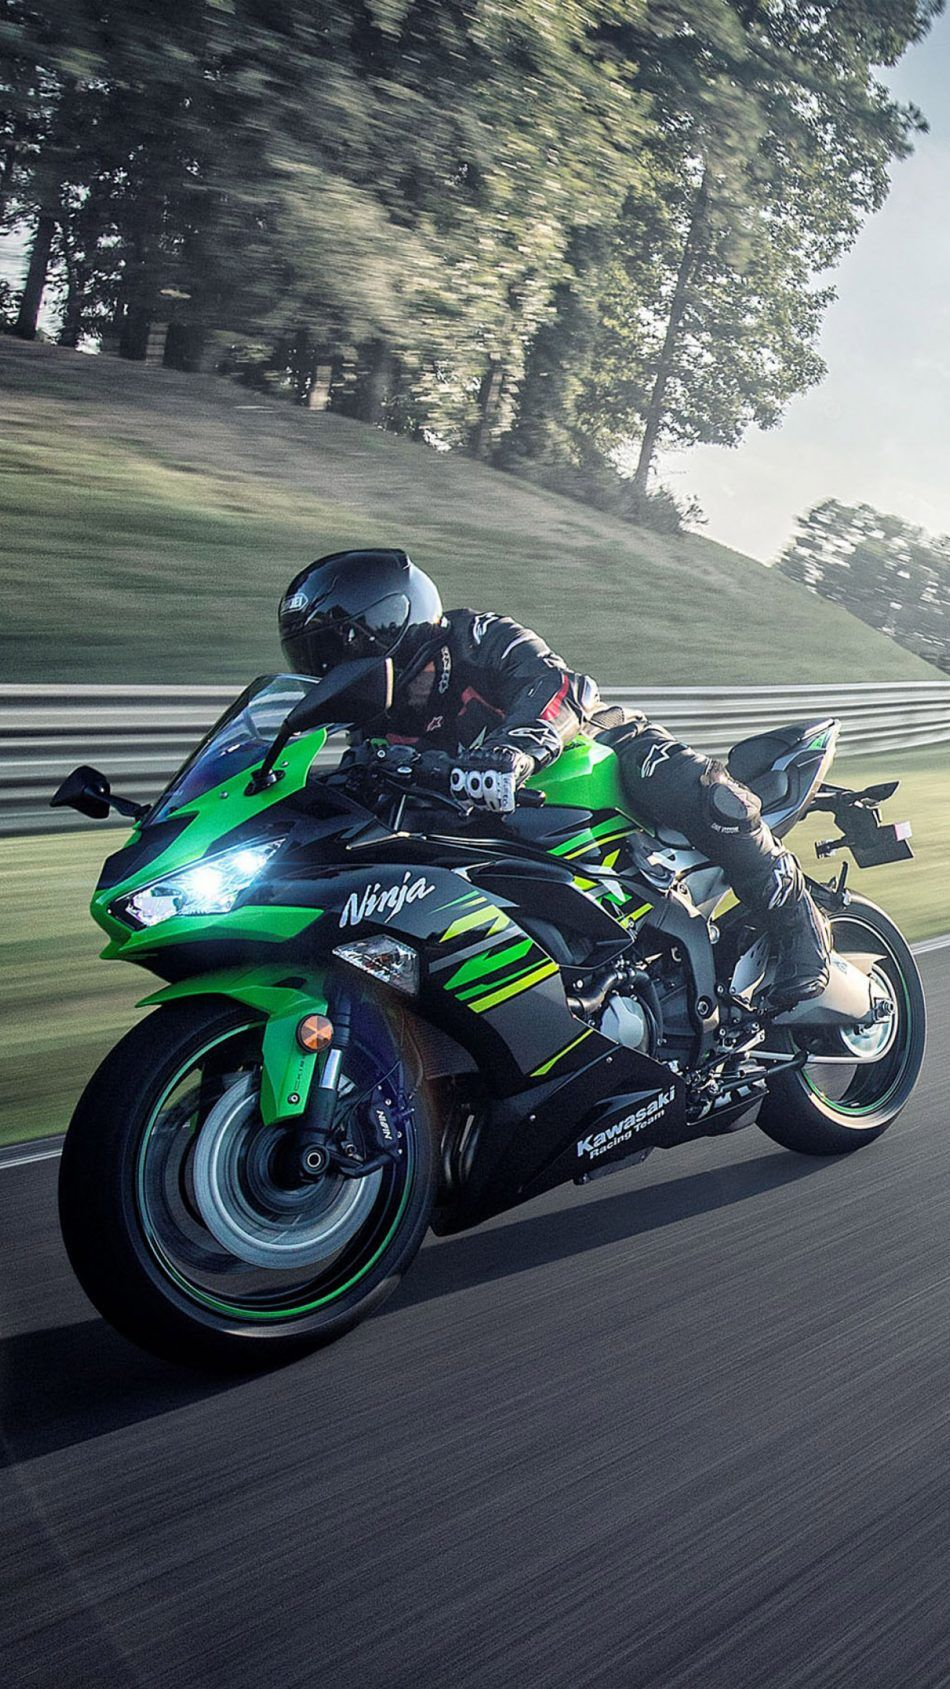 Kawasaki Ninja Zx 6r 2019 Green Black Bike Wallpapers Kawasaki